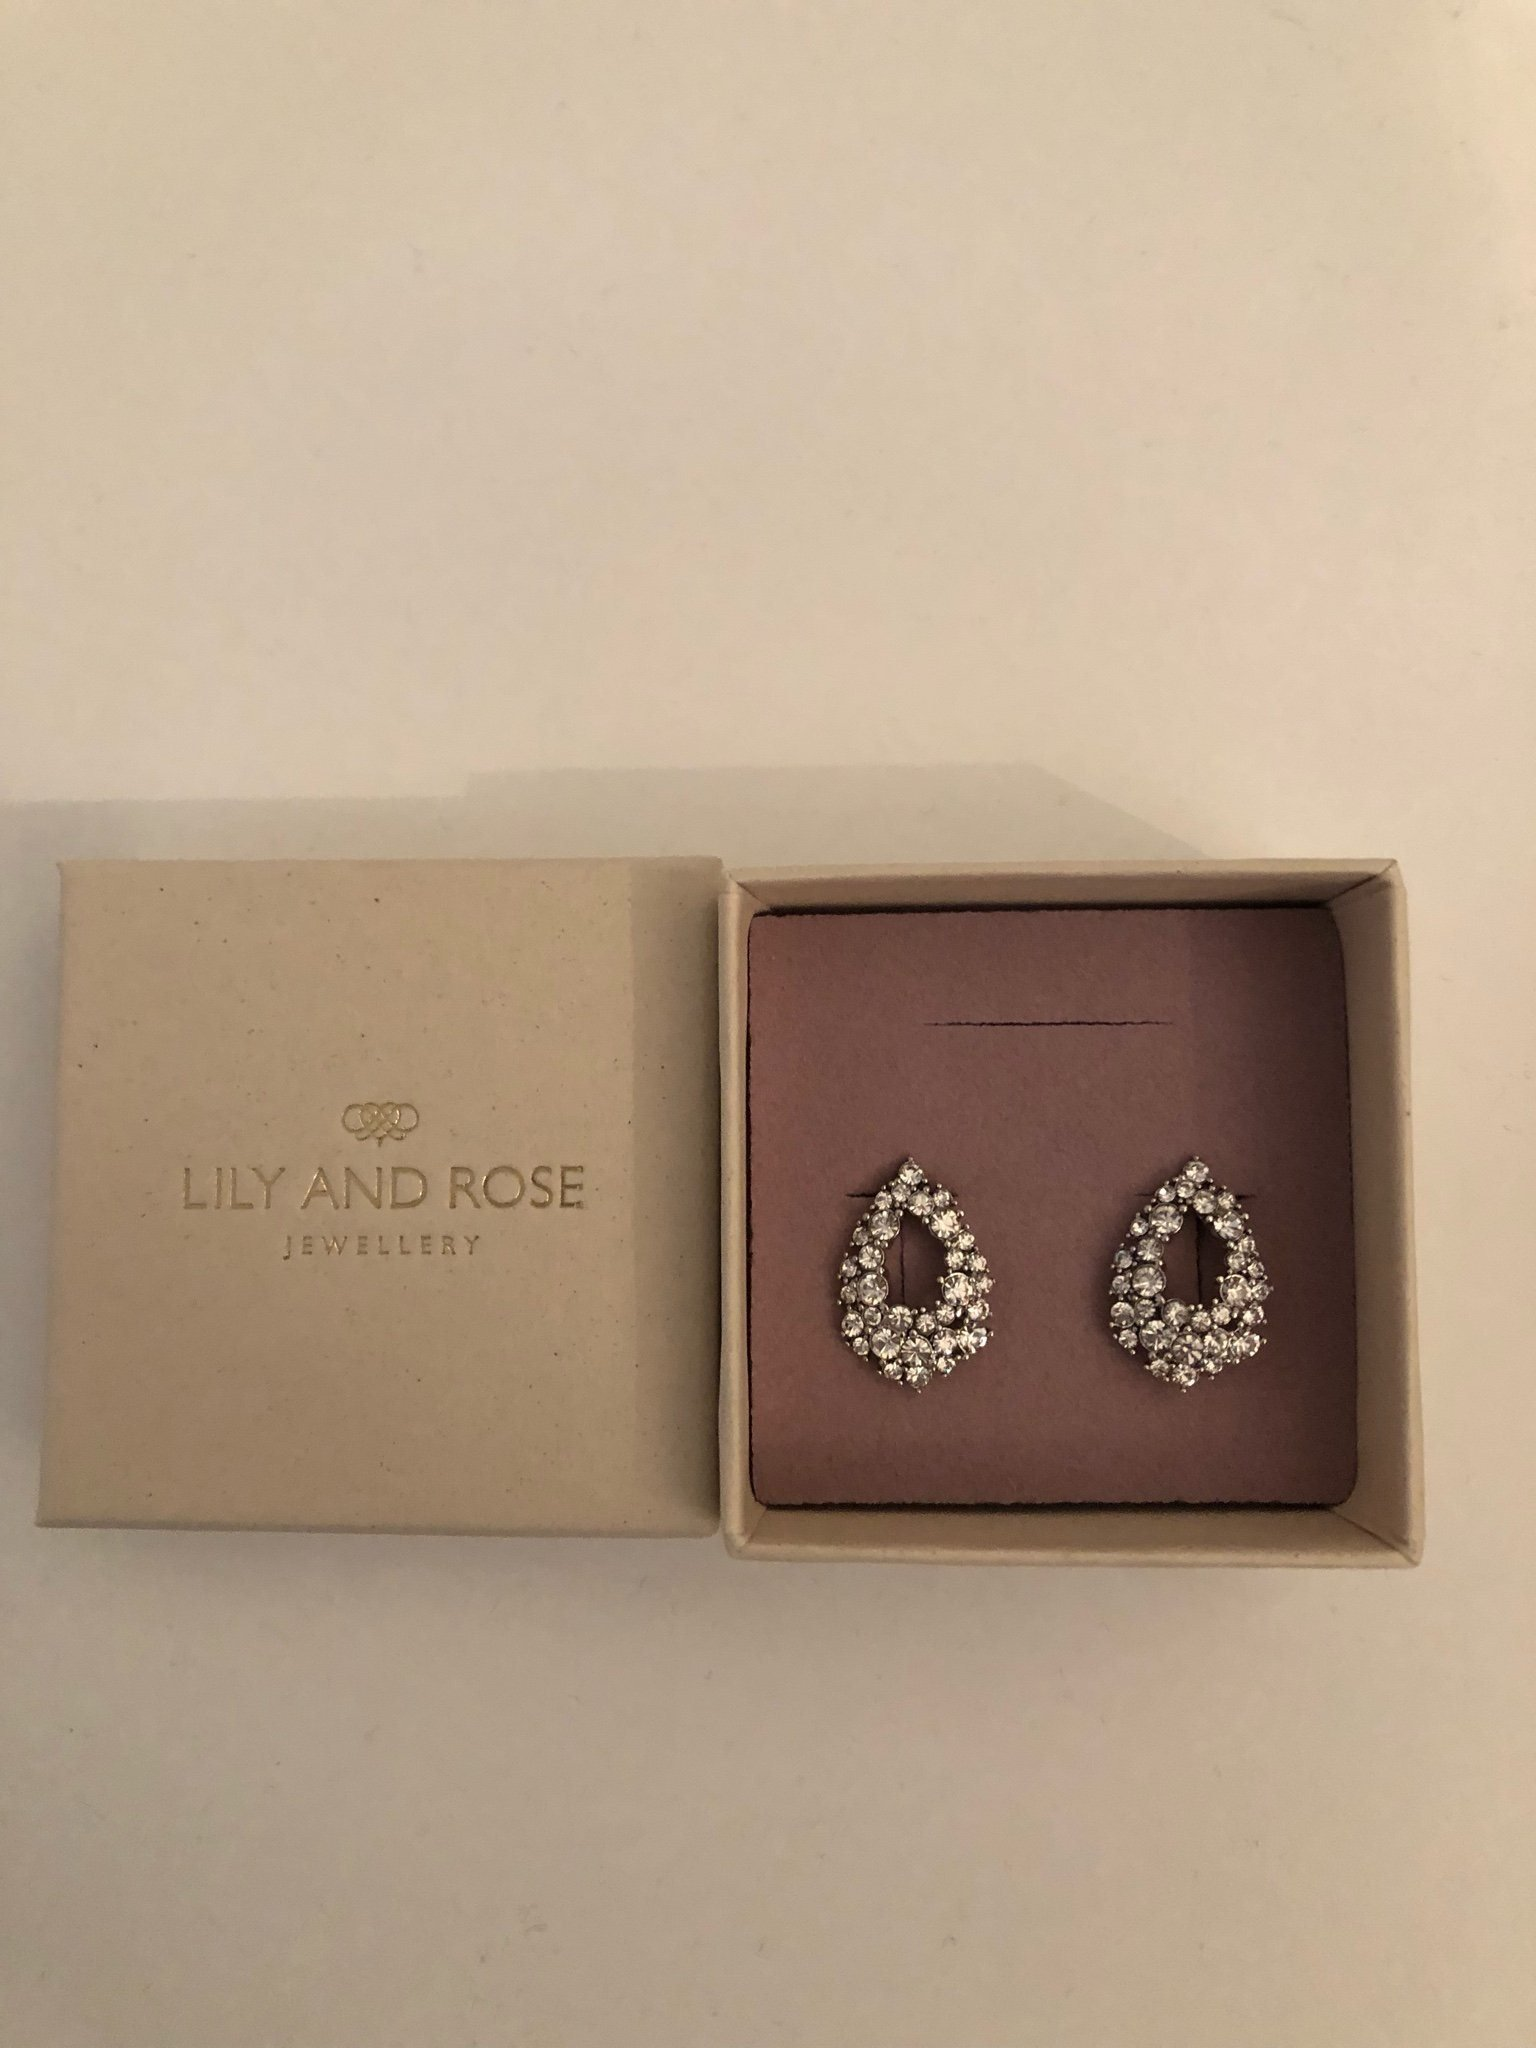 760a34893b782 Lily and rose petite alice earrings NYA (348565913) ᐈ Köp på Tradera